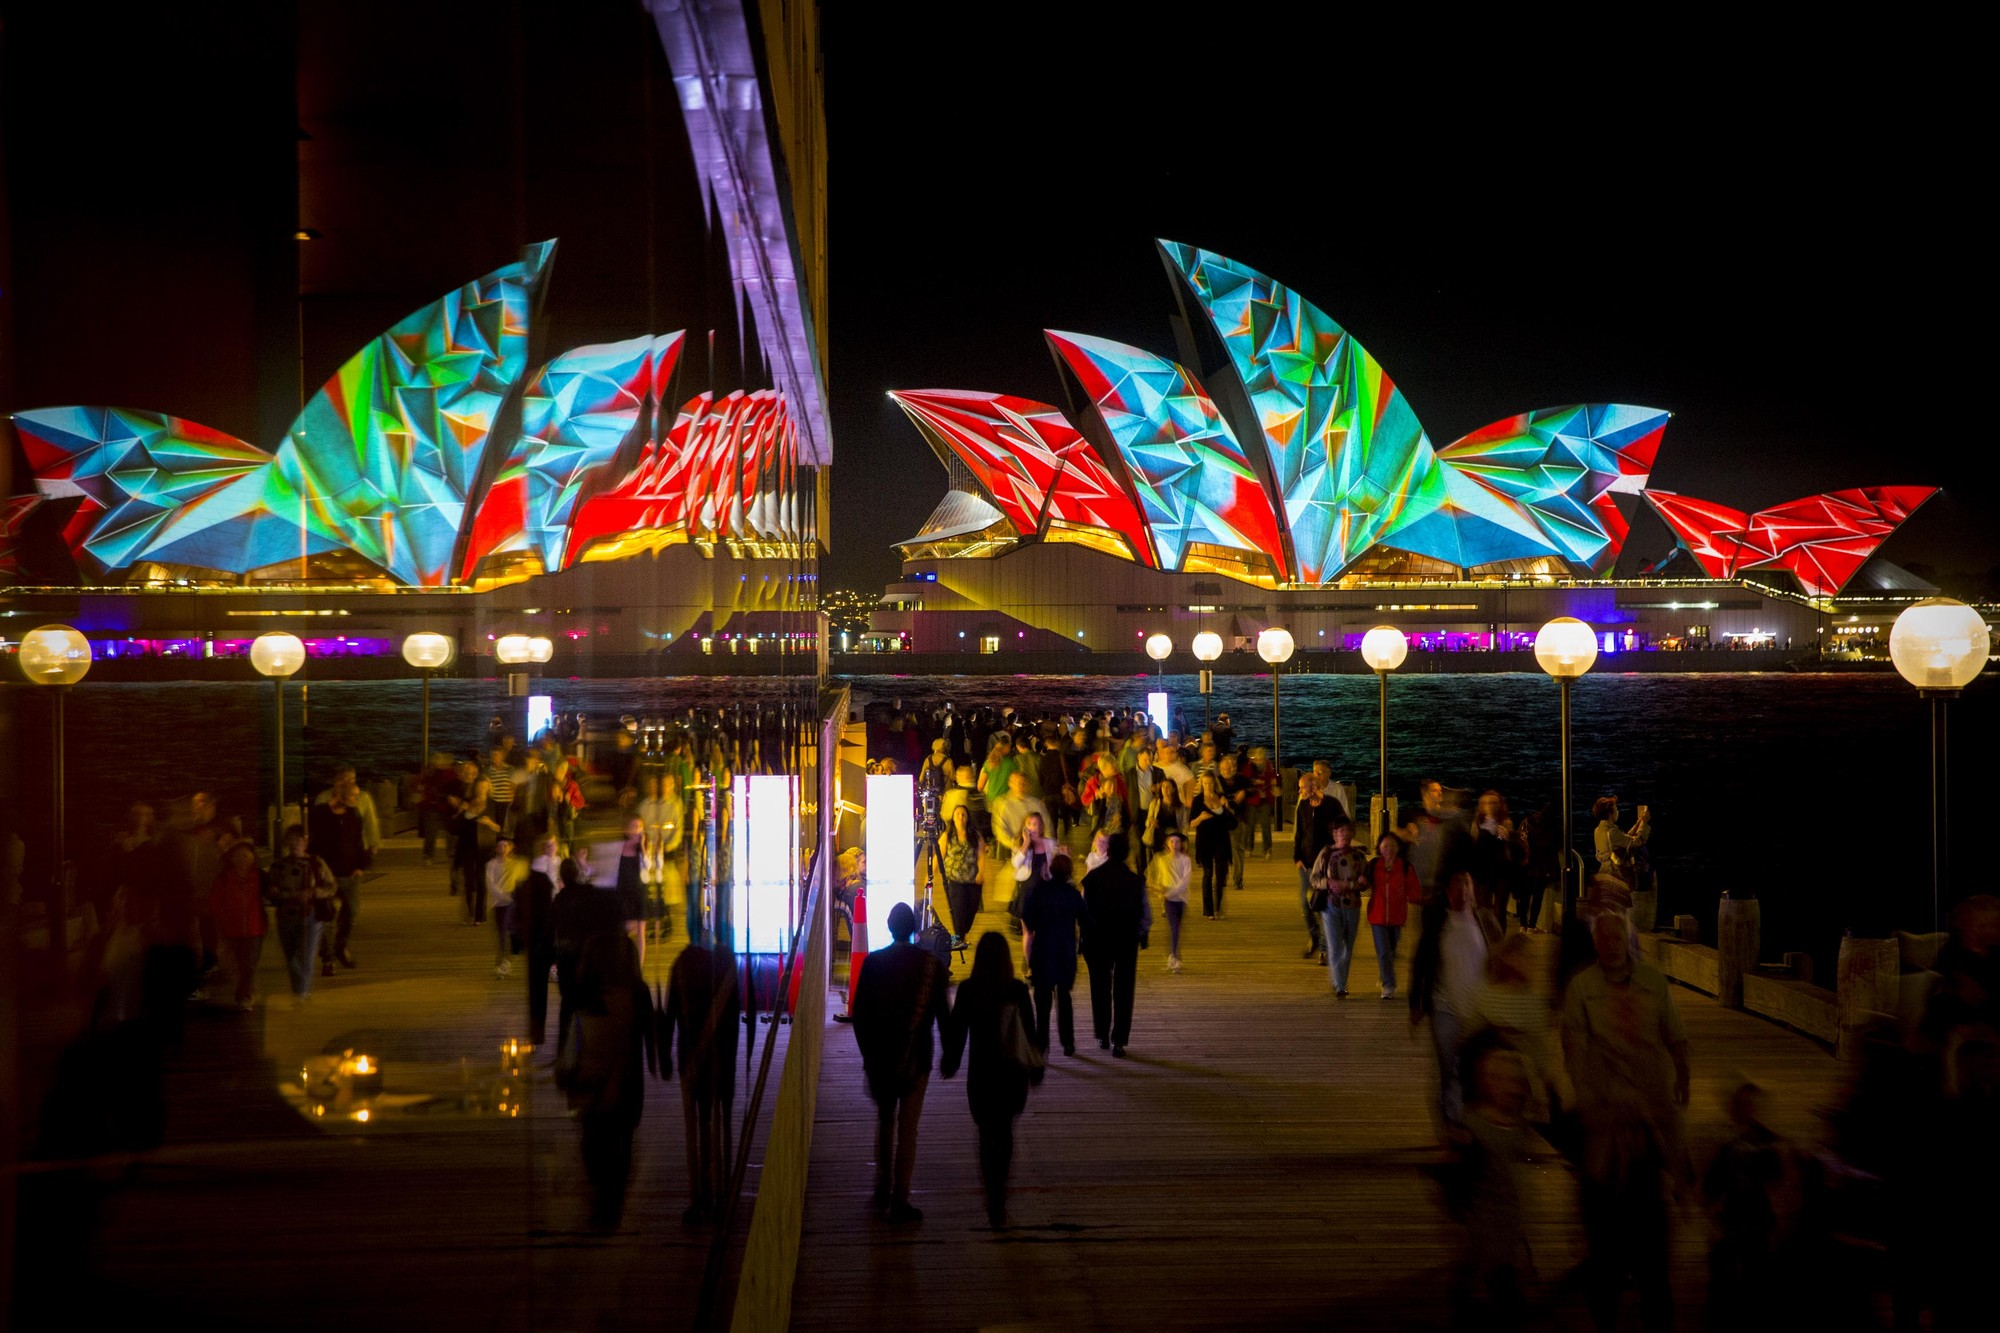 Sydney Illuminates Itself with City-Wide Light Festival, Vivid Sydney 2014: The Lighting of the Sails of the Sydney Opera House © James Horan